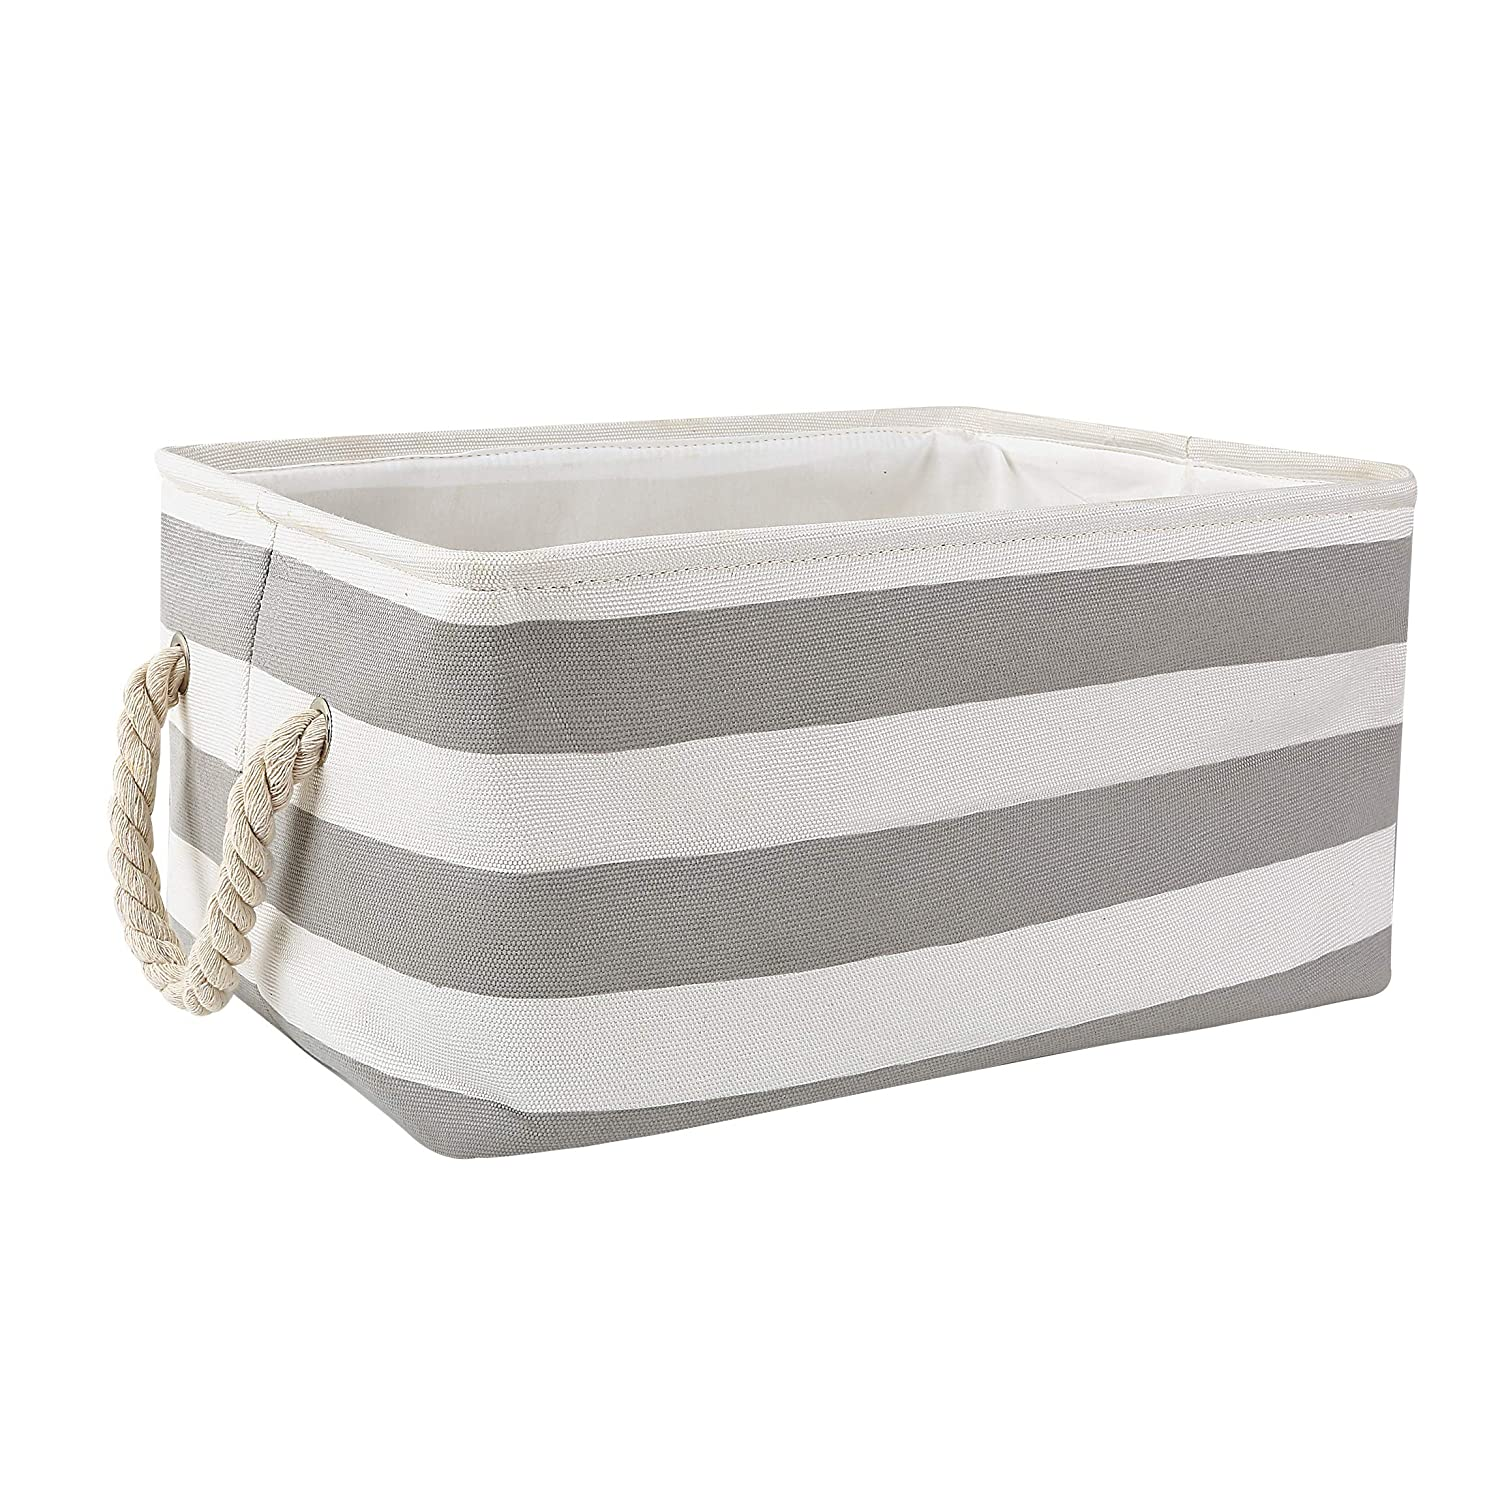 Storage Bin, Zonyon 15.7''L Rectangular Collapsible Linen Foldable Storage Container,Baby Basket,Hamper Organizer with Rope Handles for Boys,Girls,Kids,Toys,Office,Bedroom,Closet,Gift Basket,Grey